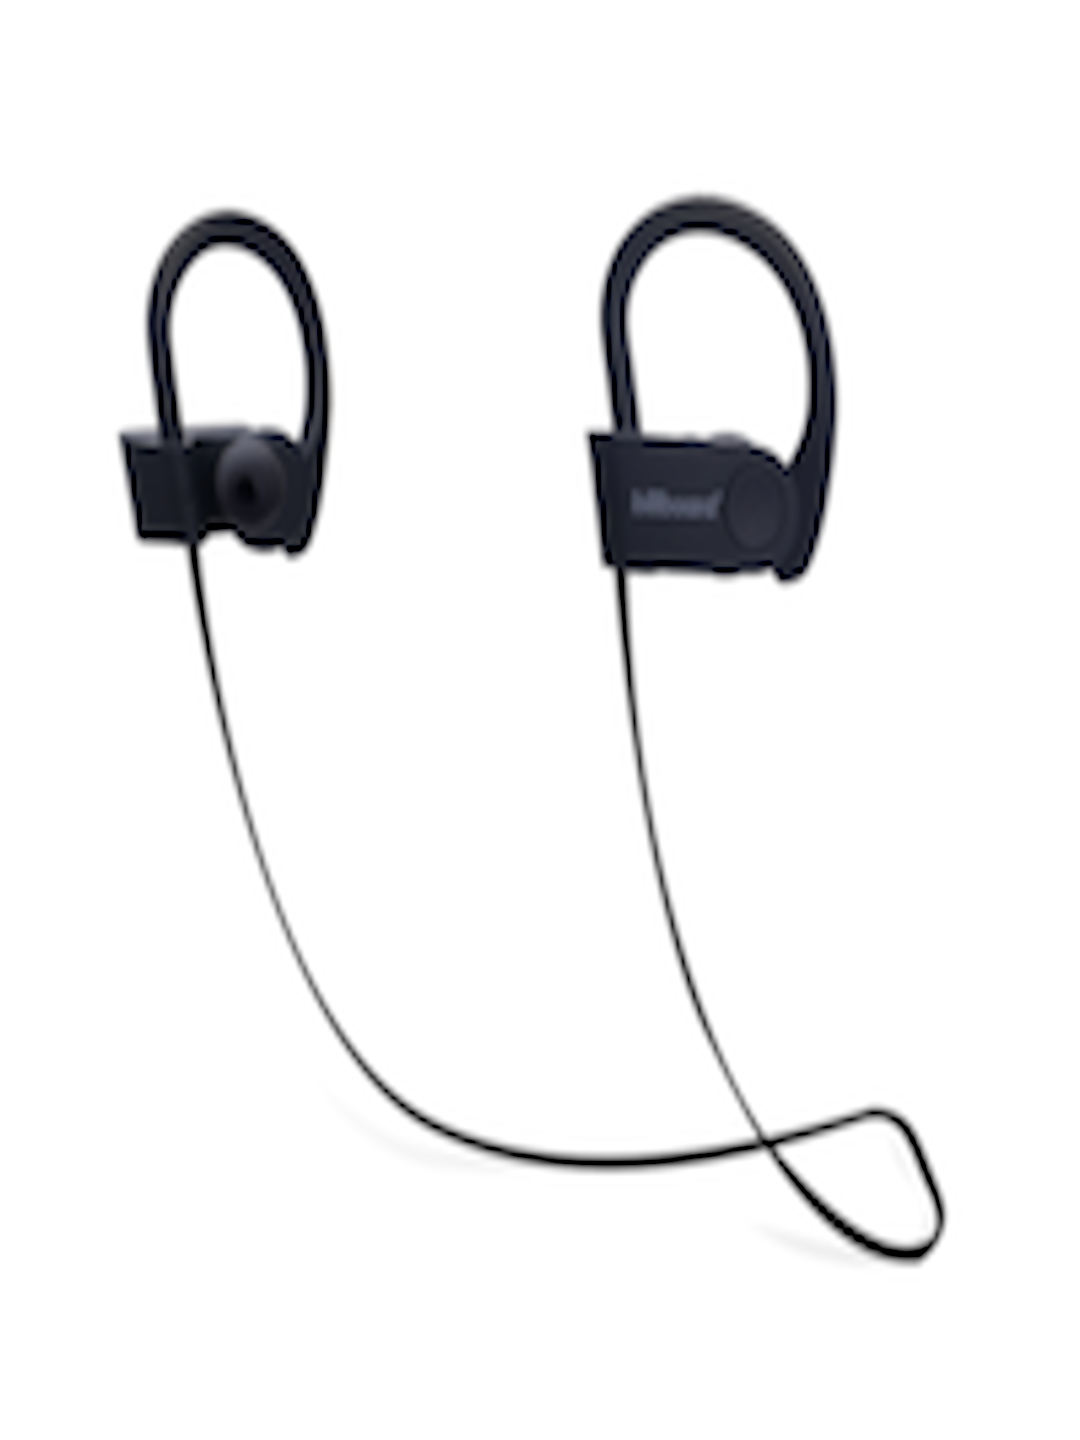 Buy Billboard Black BB896 Extra Bass Ear Loop Earphones - Headphones for Unisex 7281288 | Myntra